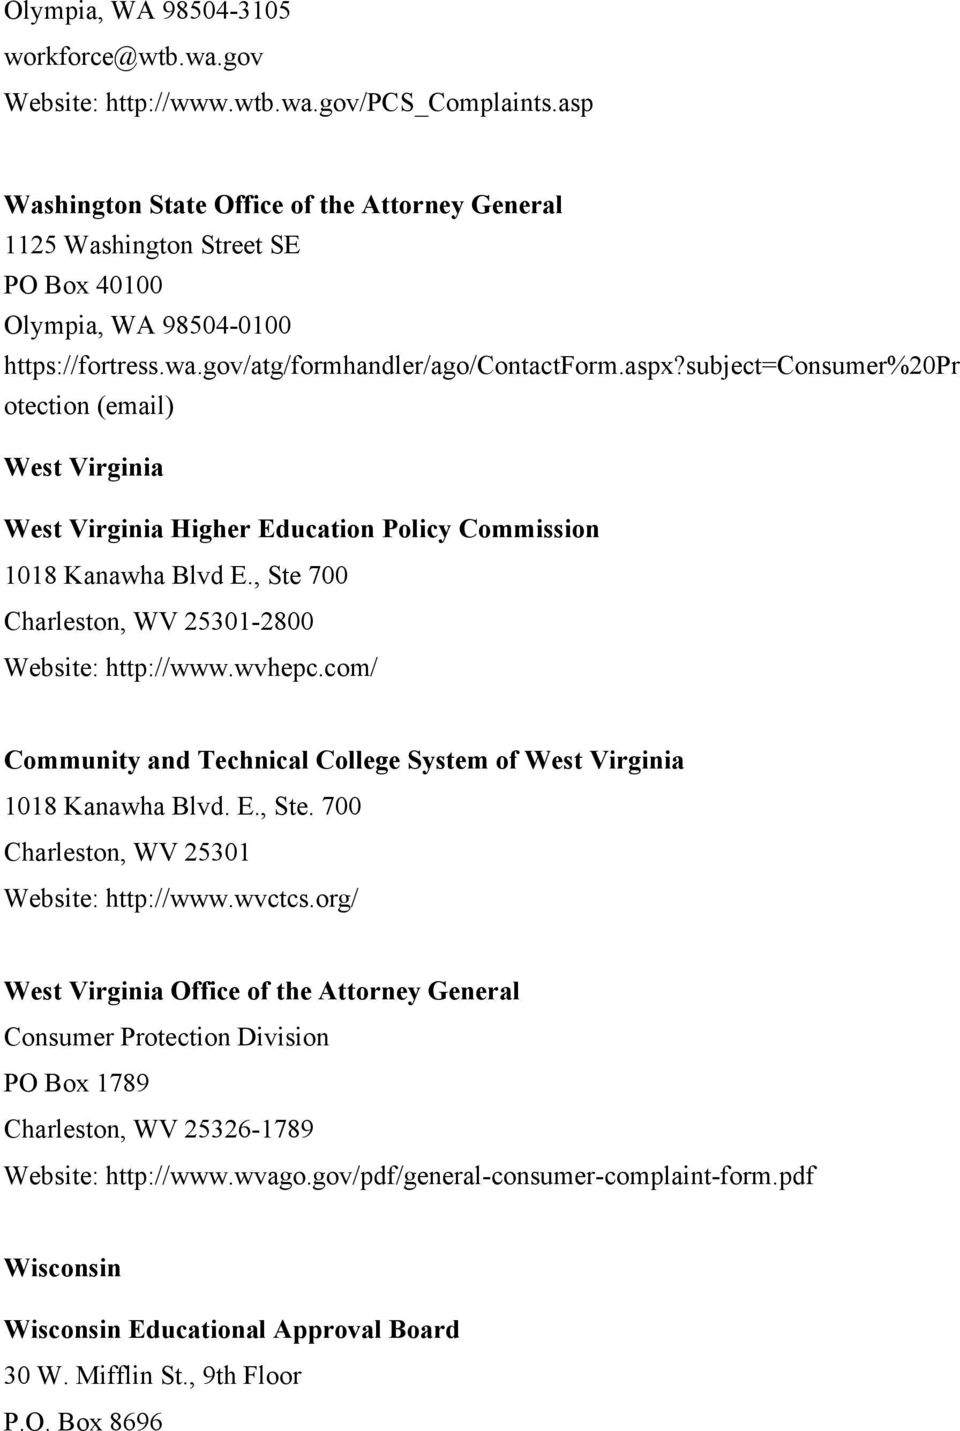 subject=consumer%20pr otection (email) West Virginia West Virginia Higher Education Policy Commission 1018 Kanawha Blvd E., Ste 700 Charleston, WV 25301-2800 http://www.wvhepc.